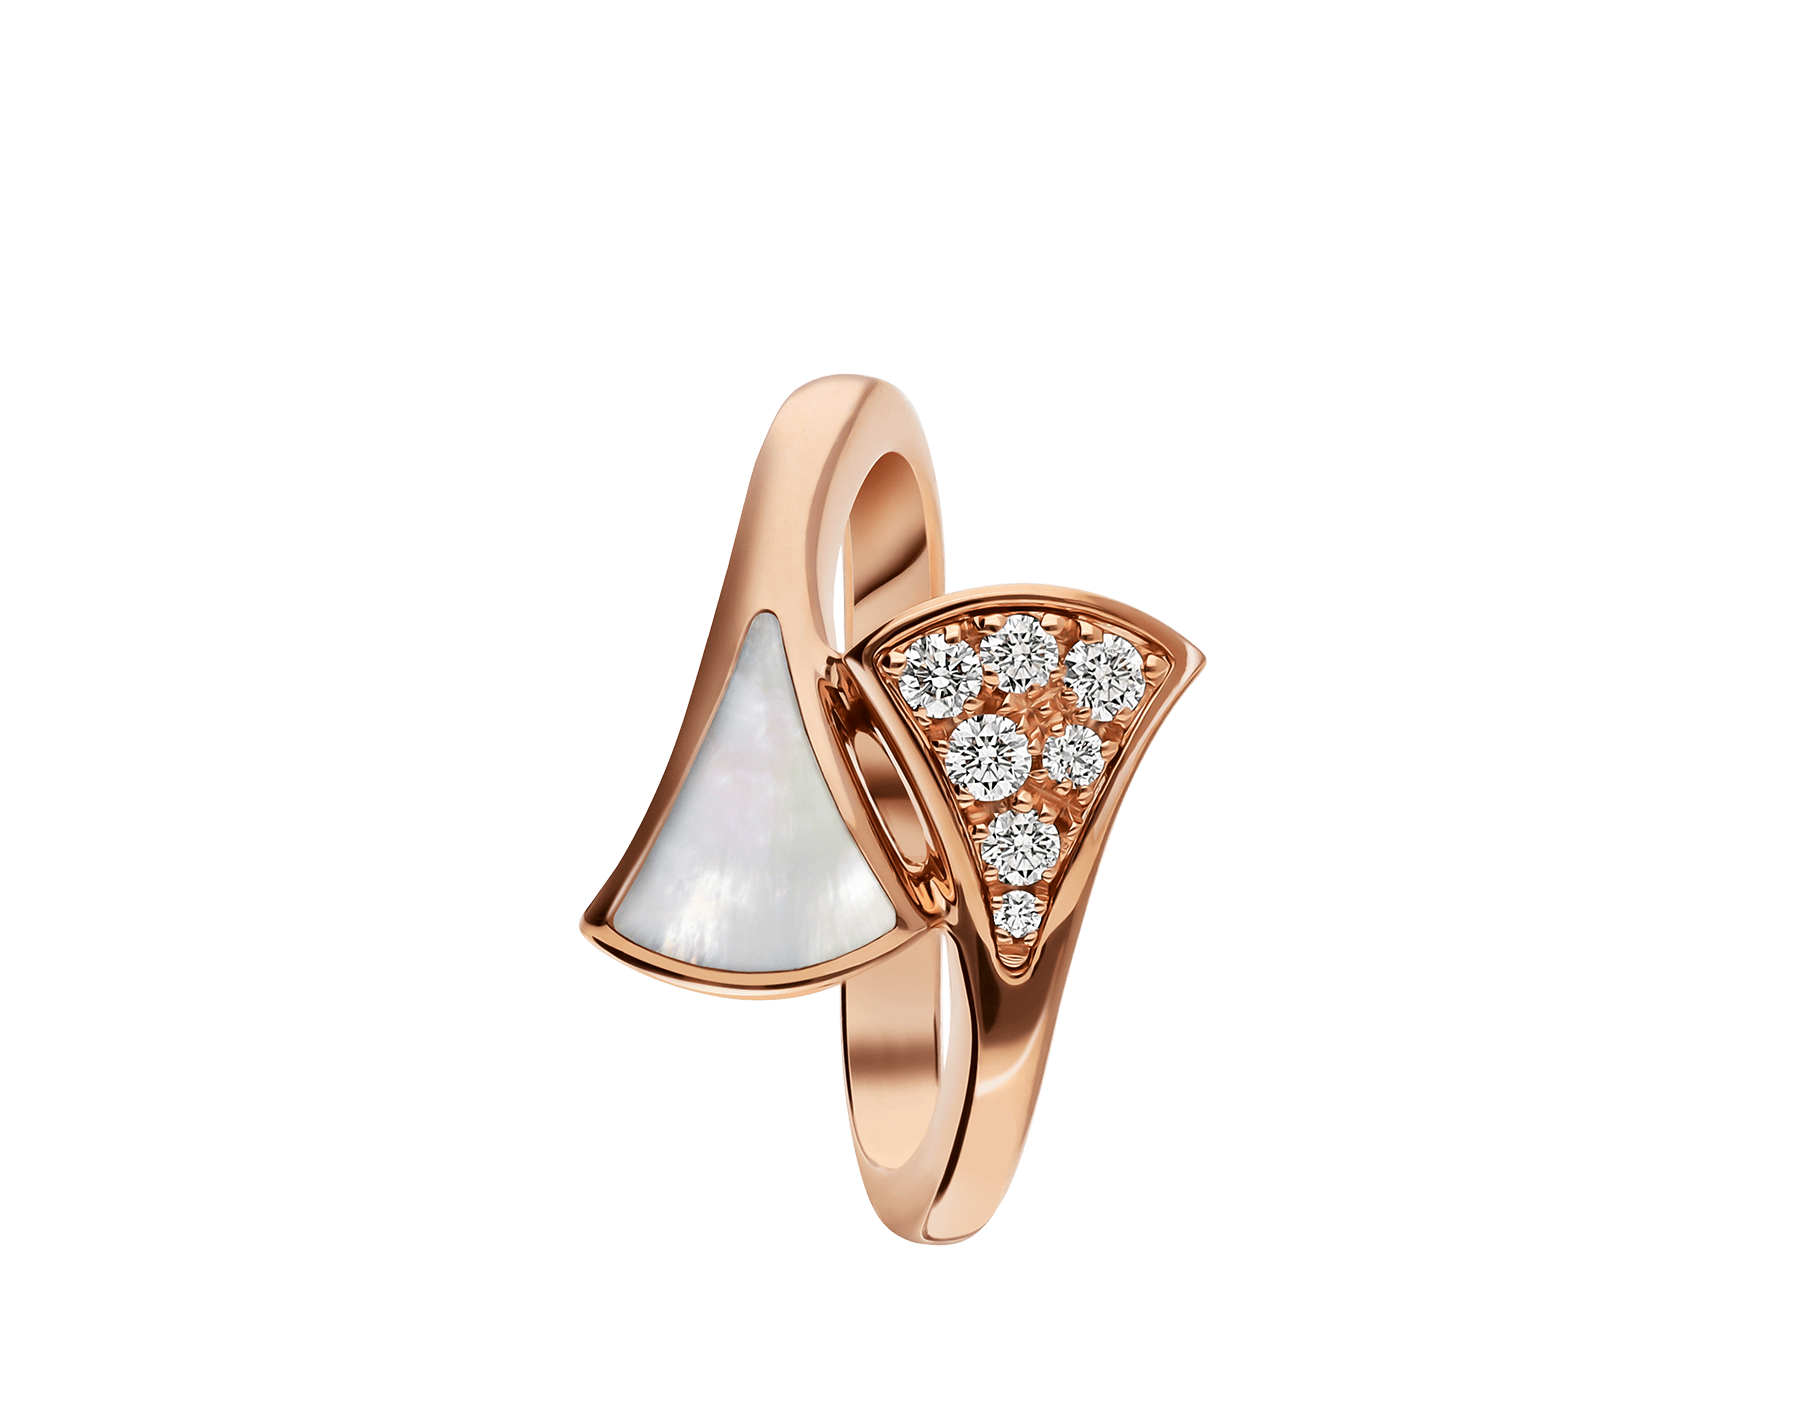 DIVAS' DREAM small contraire ring in 18 kt rose gold, set with mother-of-pearl and pavé diamonds (0.10 ct). AN858003 image 2